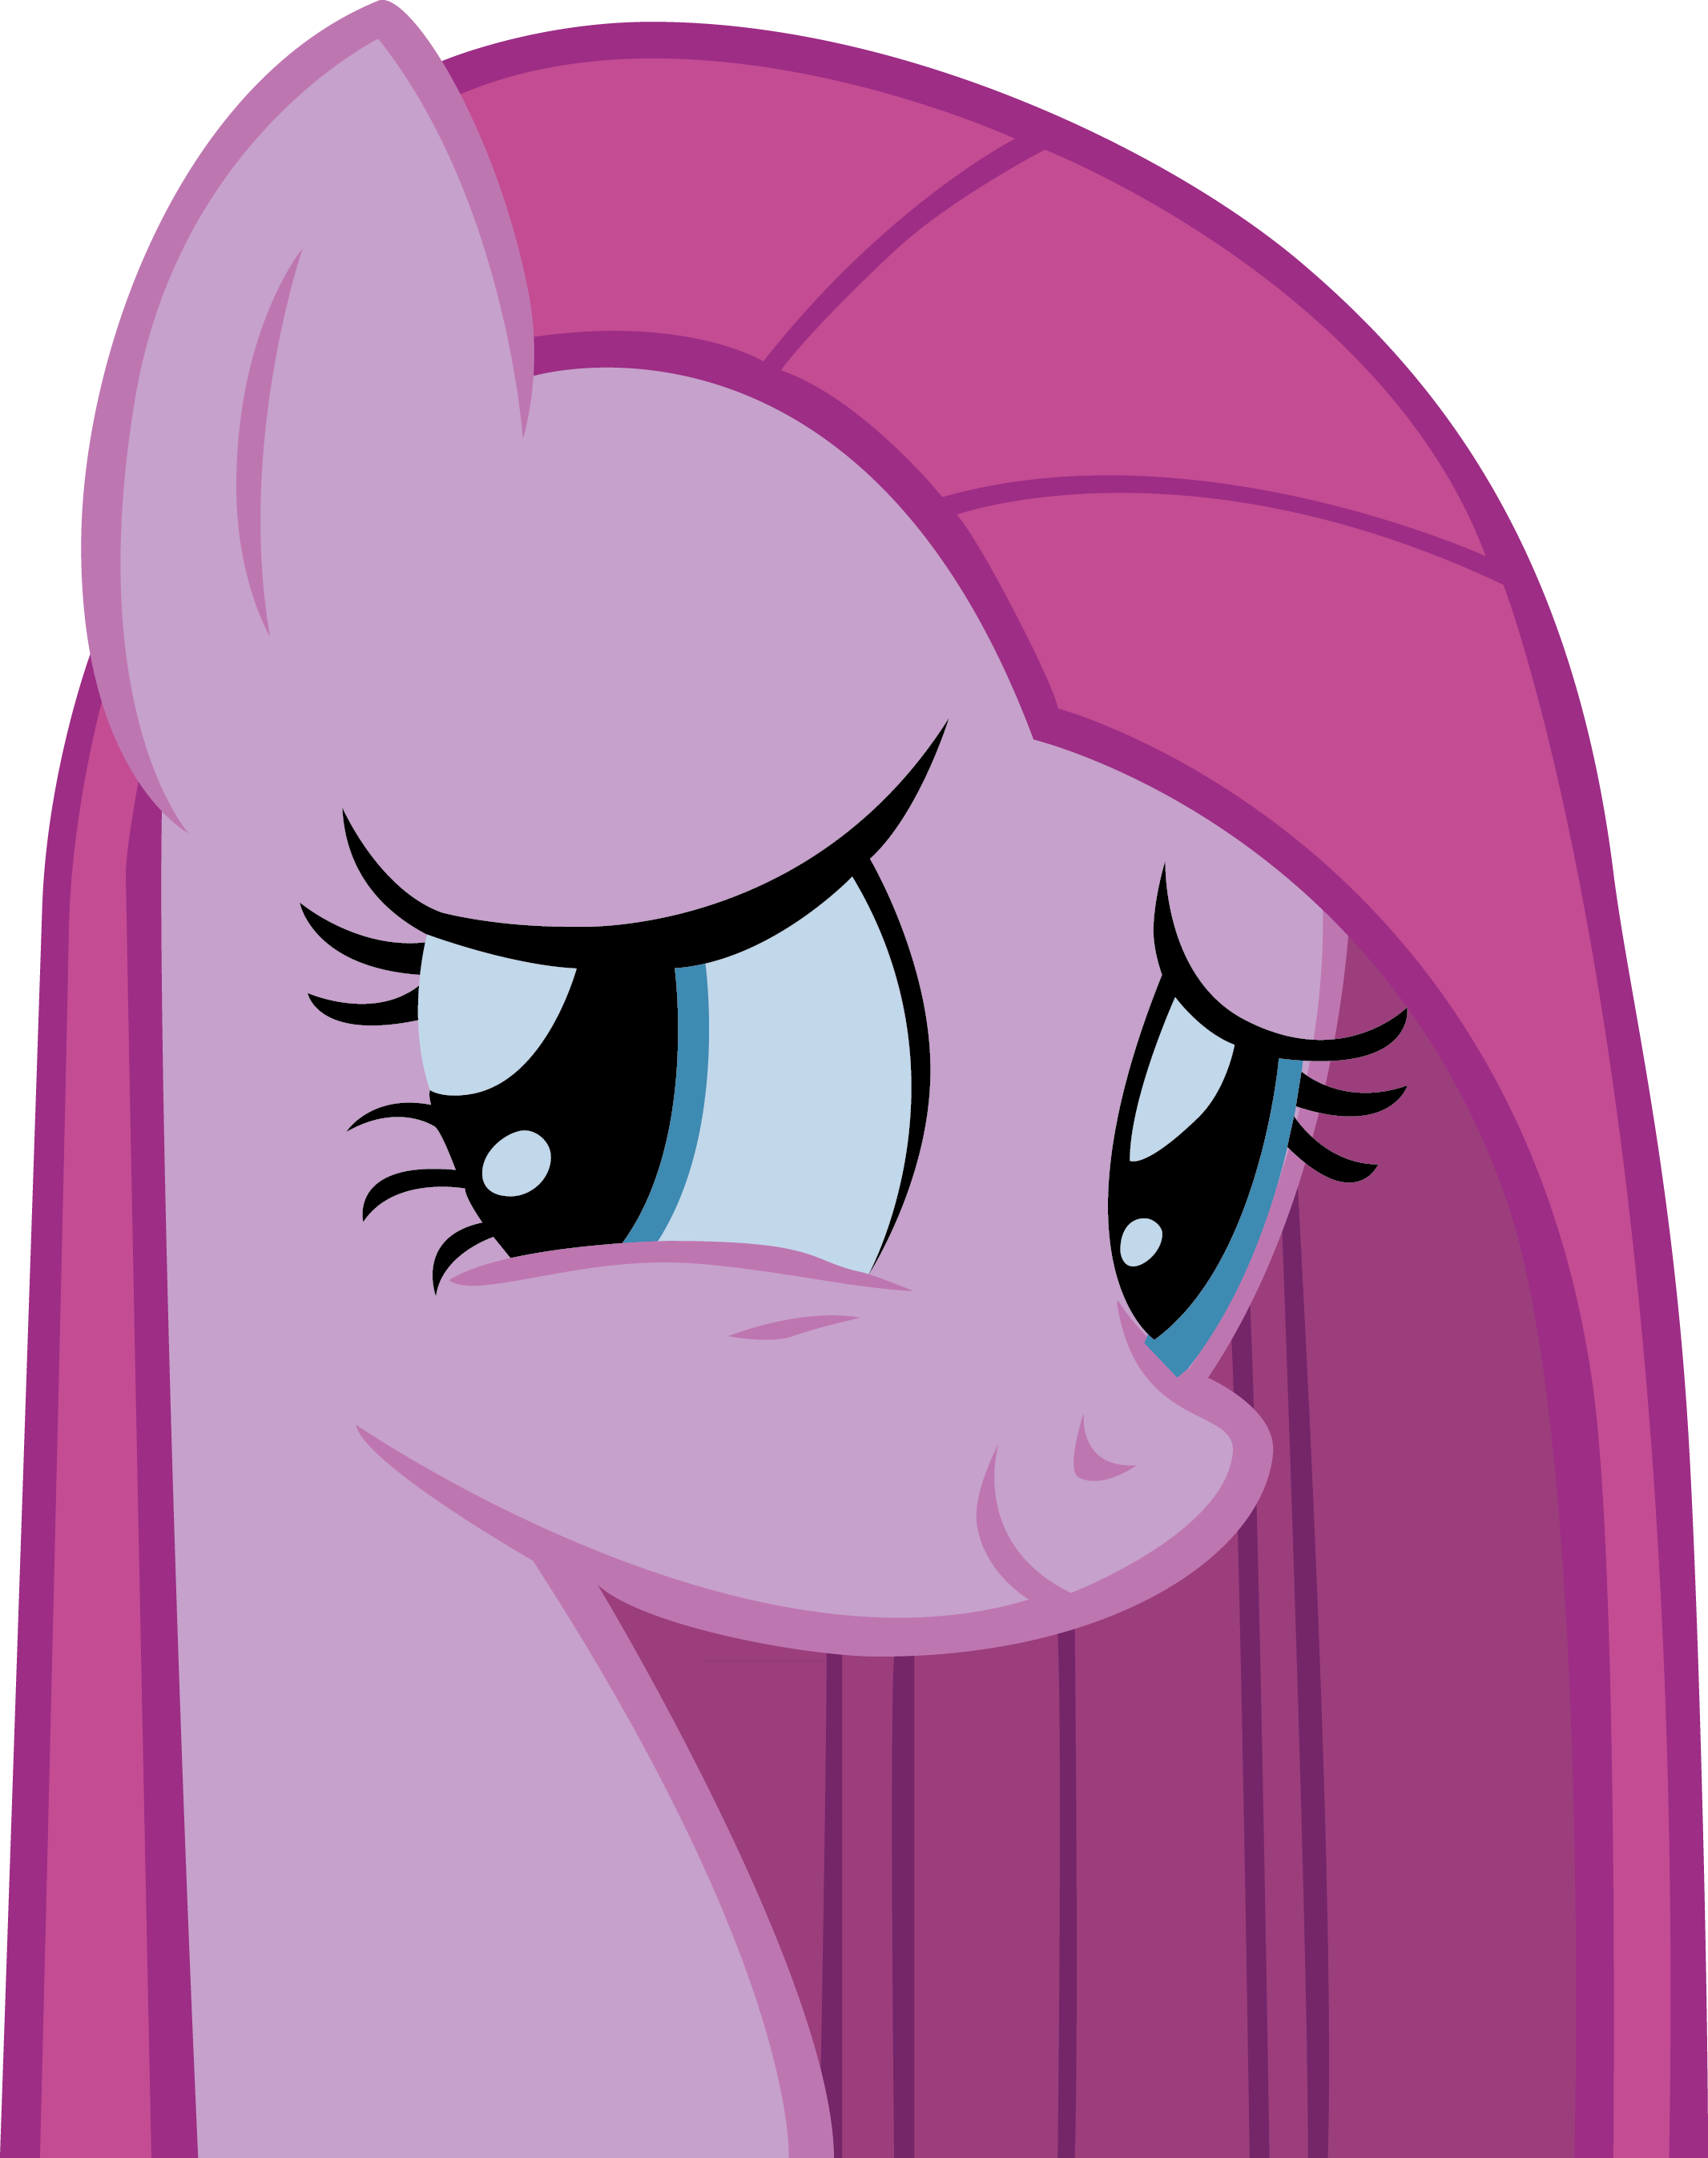 pinkamena_smile_by_winter_shadowhooves-d4p2dfz.png